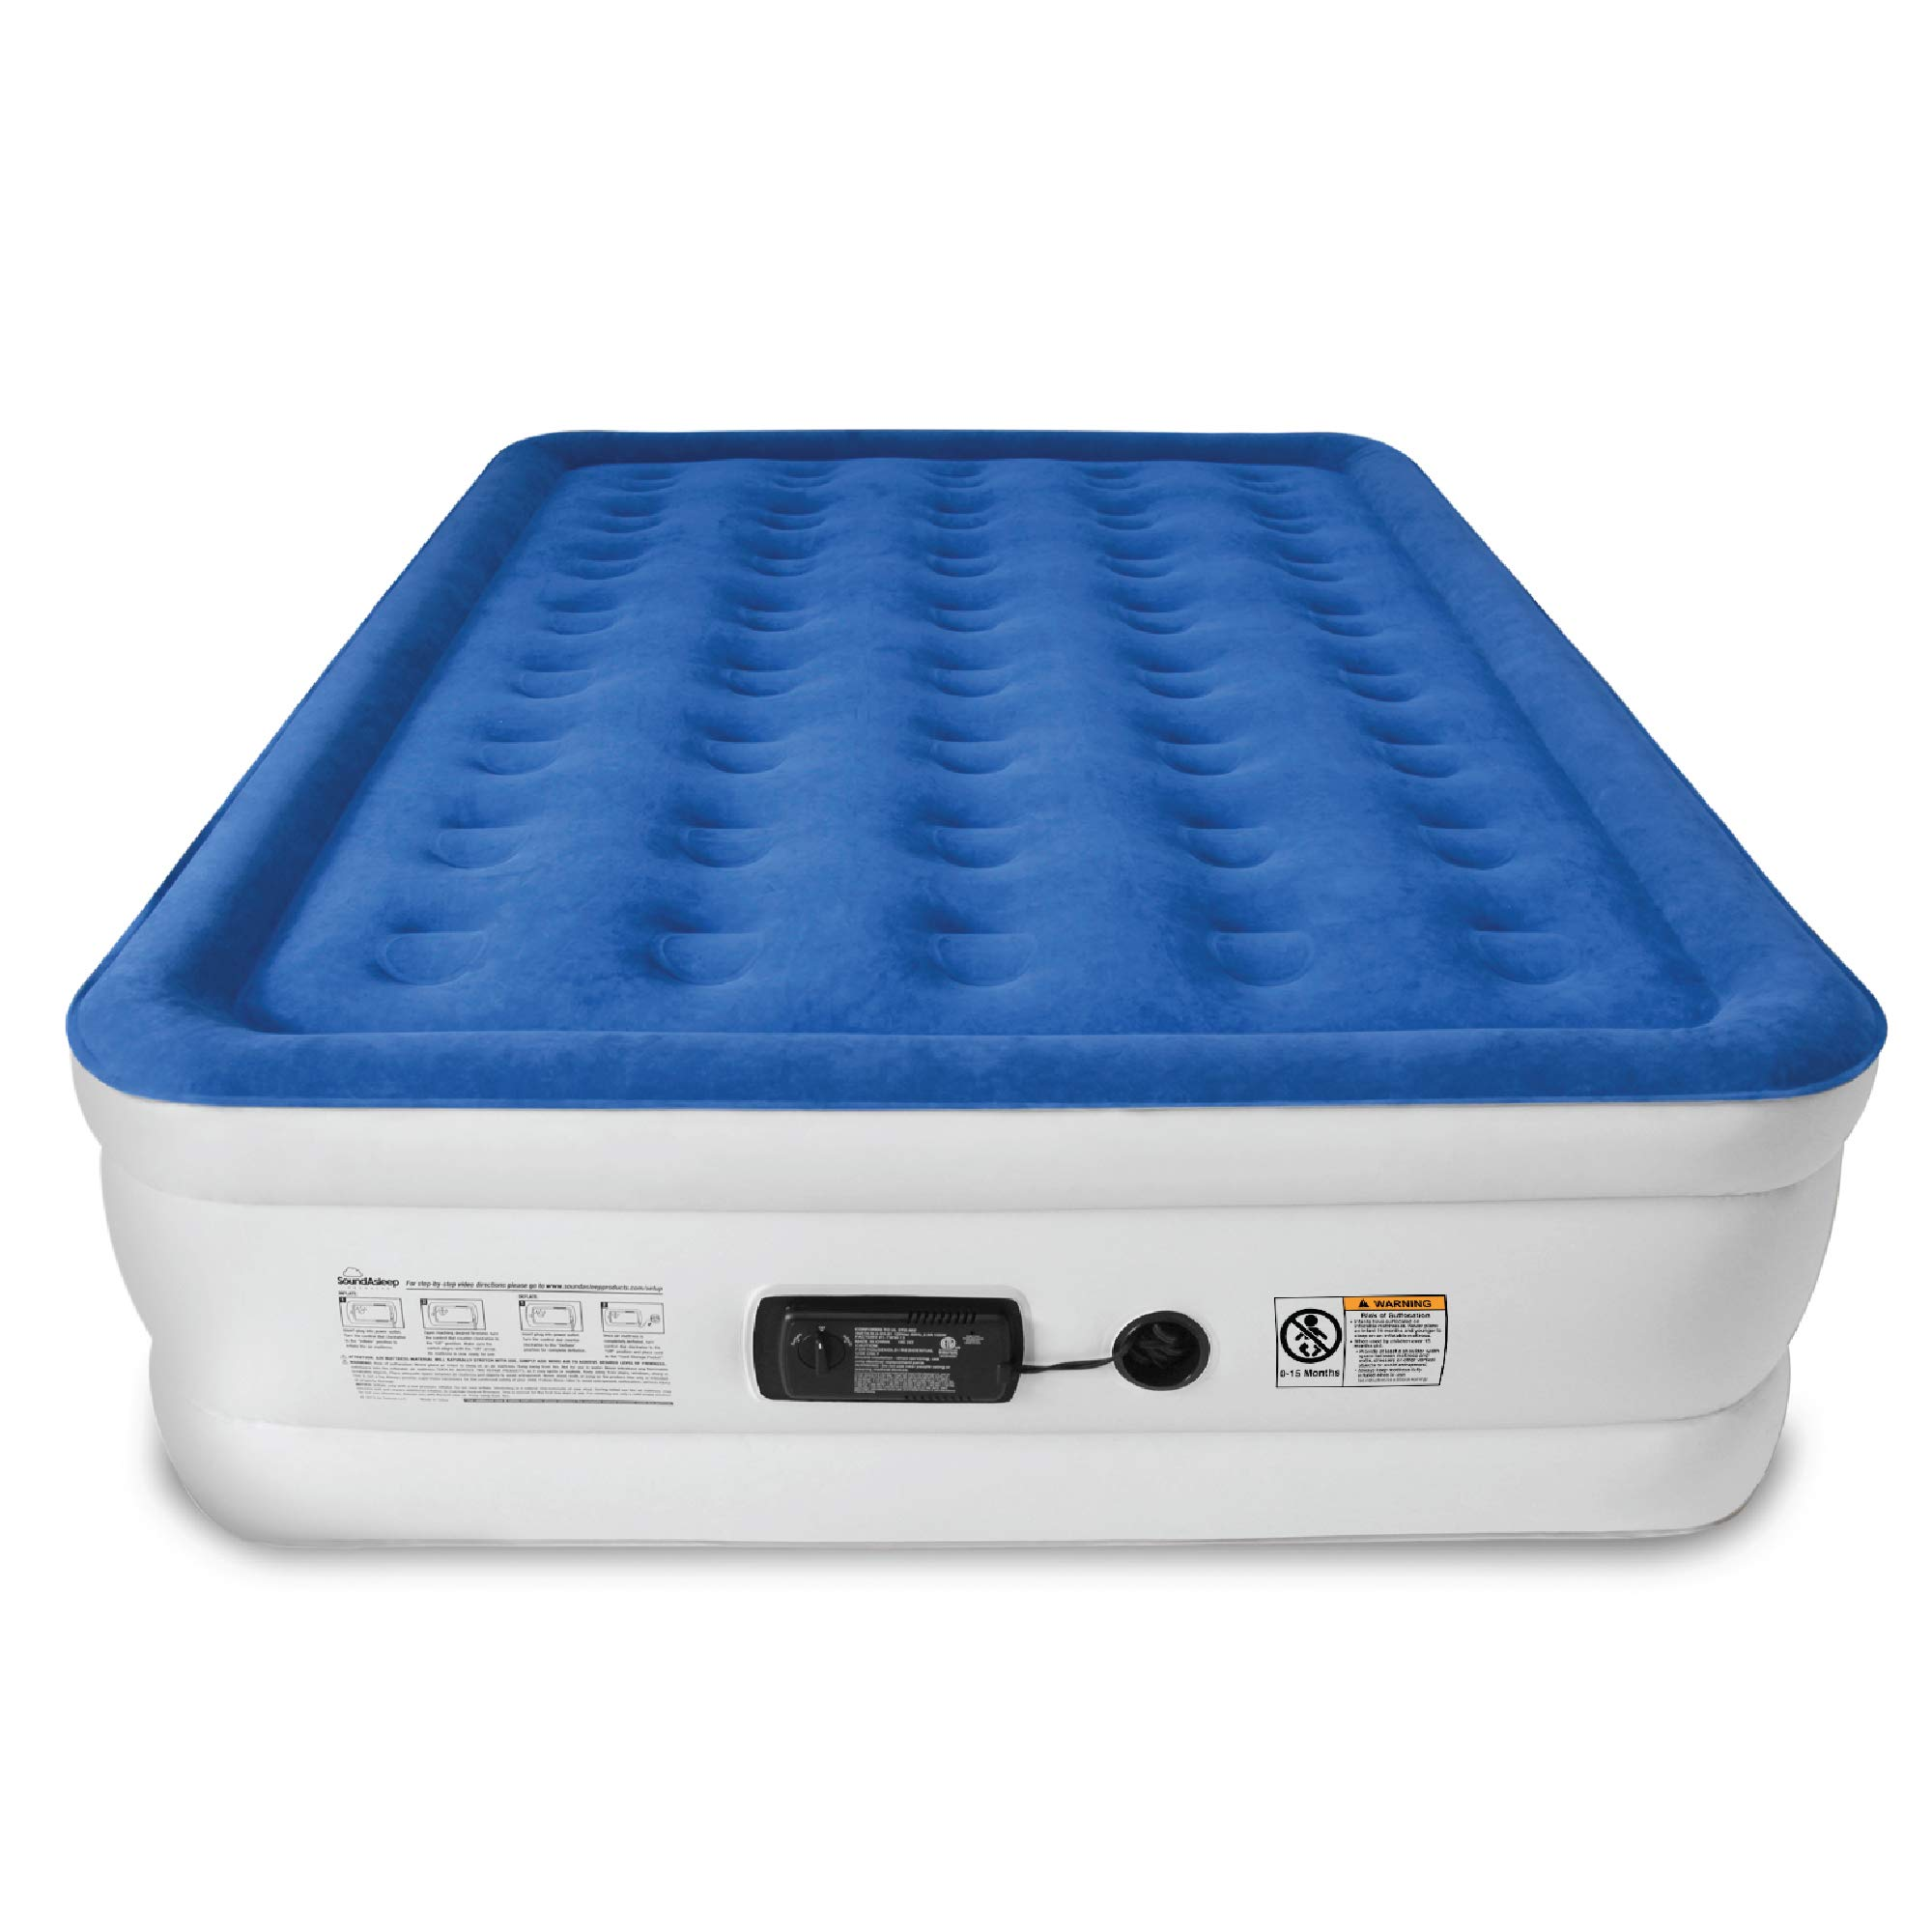 SoundAsleep Dream Series Air Mattress with ComfortCoil Technology & Internal High Capacity Pump - Queen Size by SoundAsleep Products